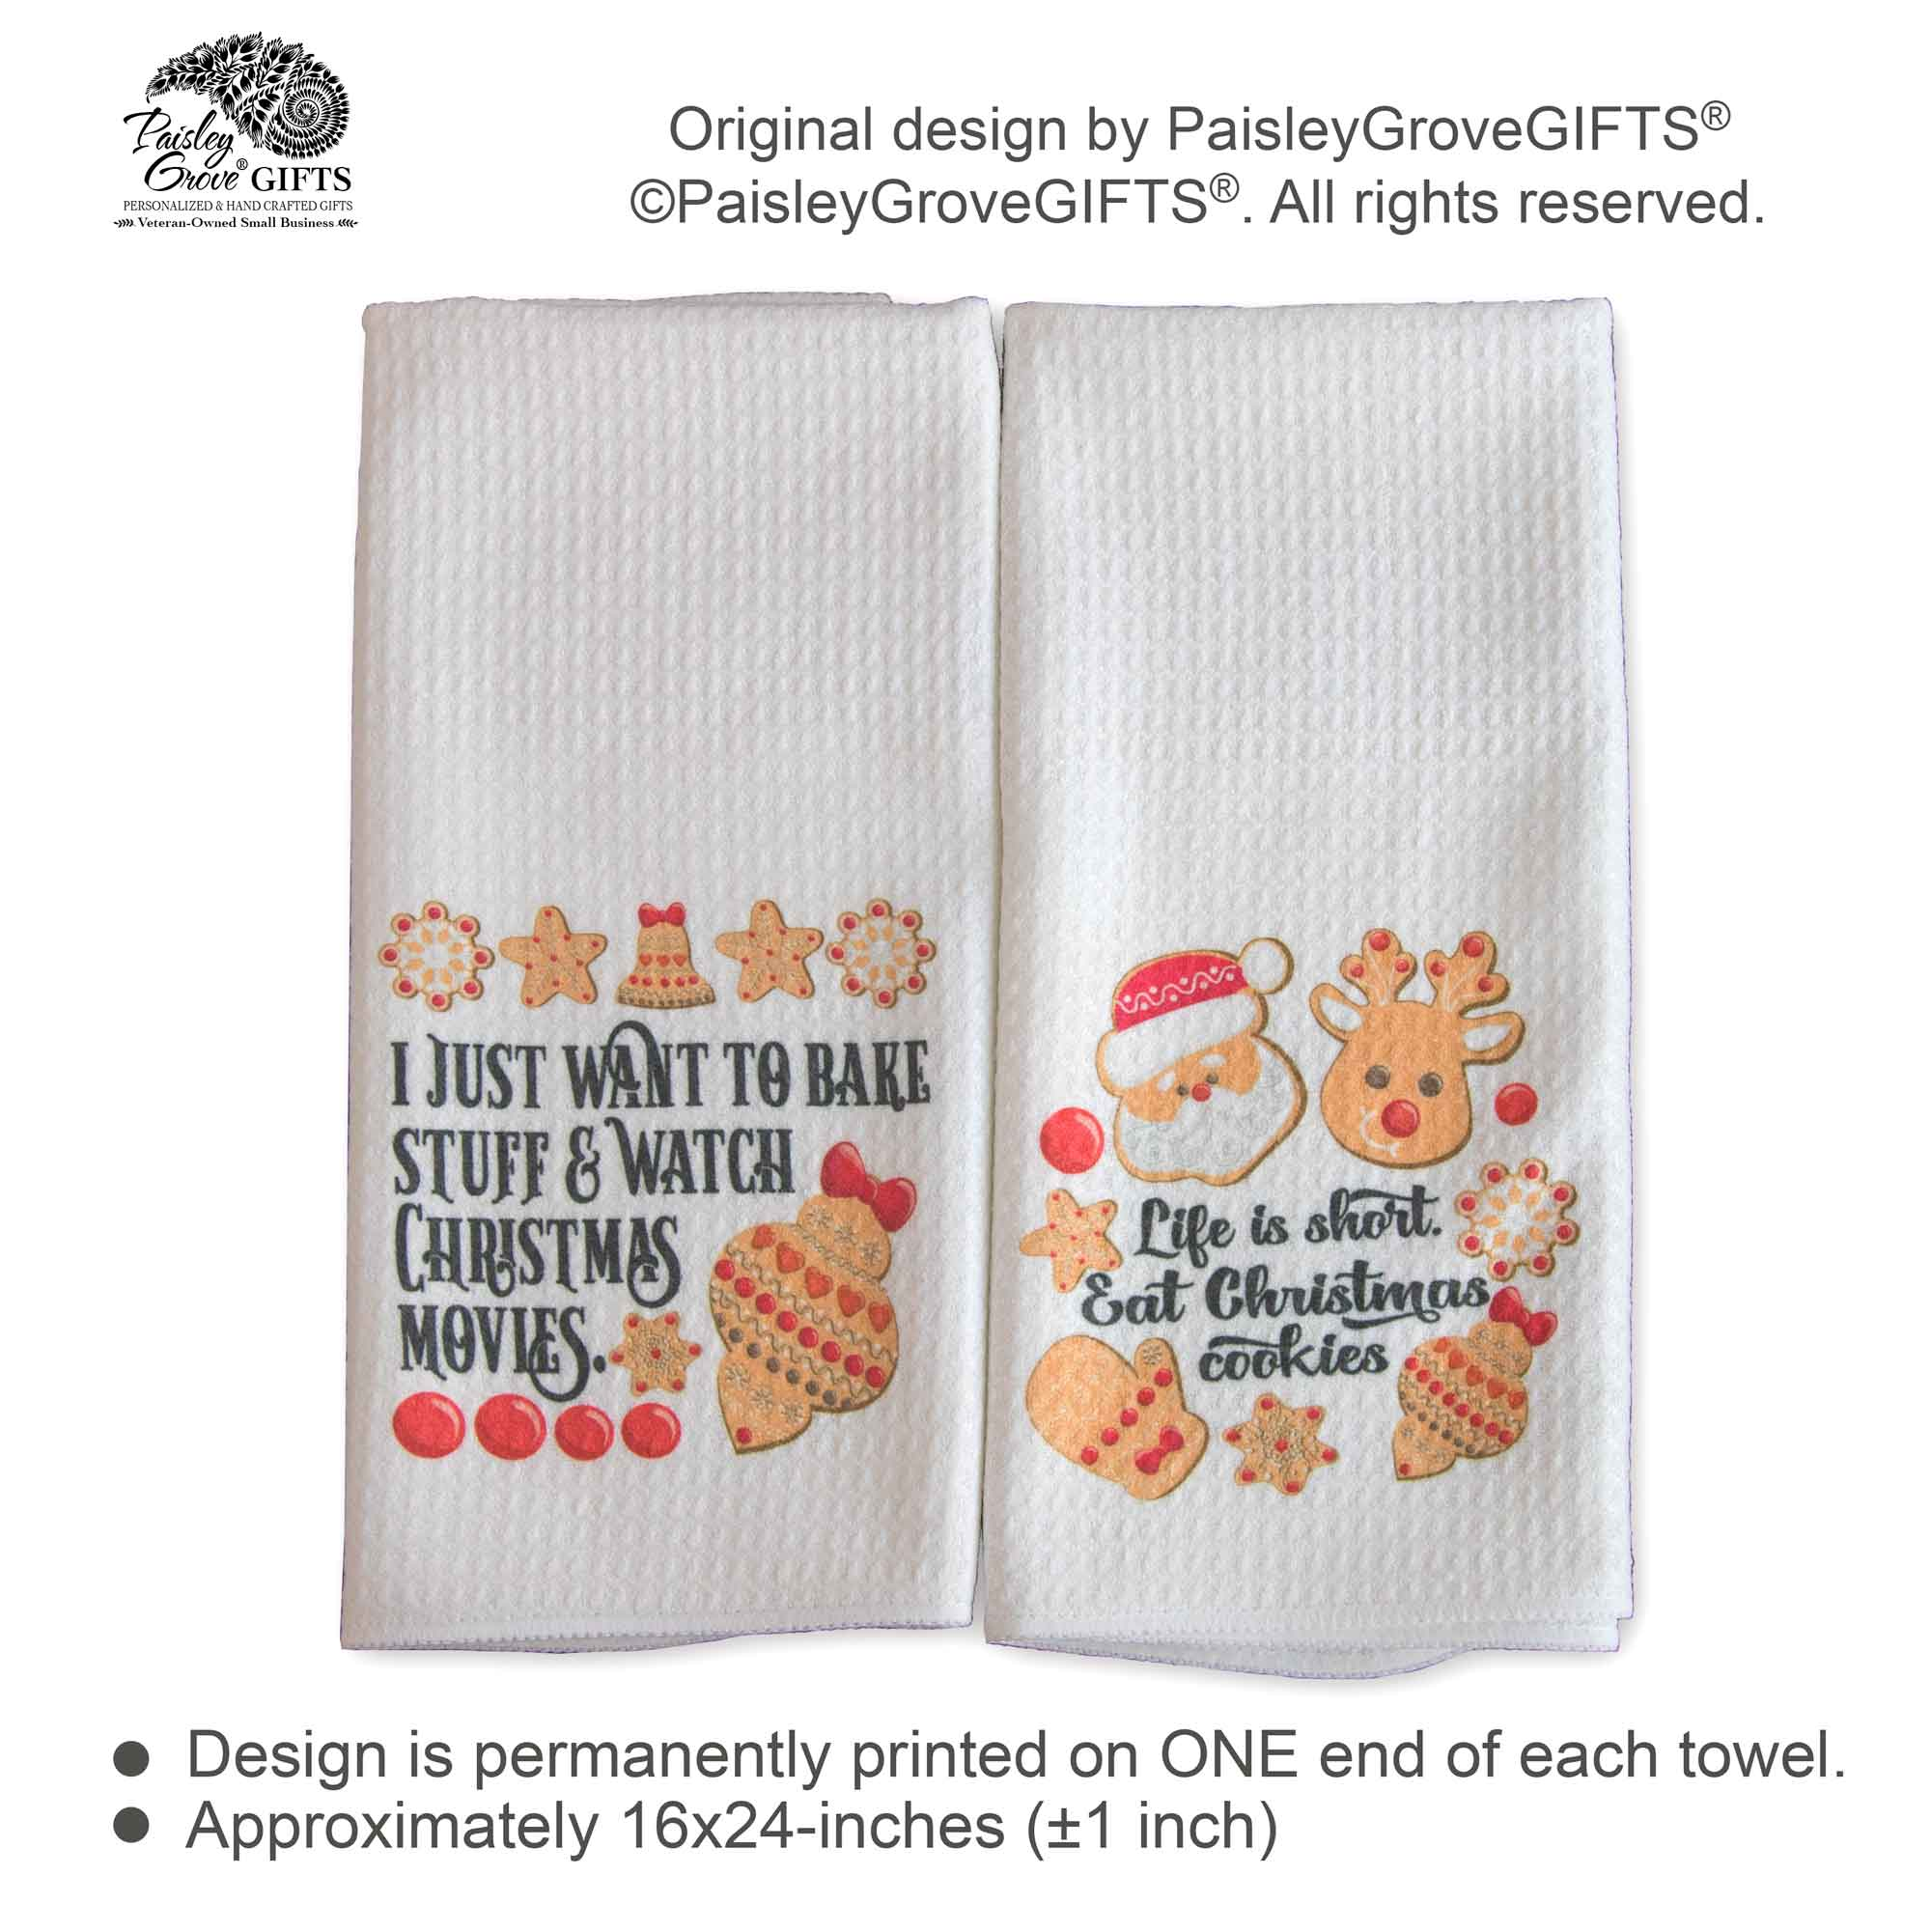 CopyrightPaisleyGroveGIFTS S131ab Information on Funny Gifts for Bakers Christmas Gifts for Her